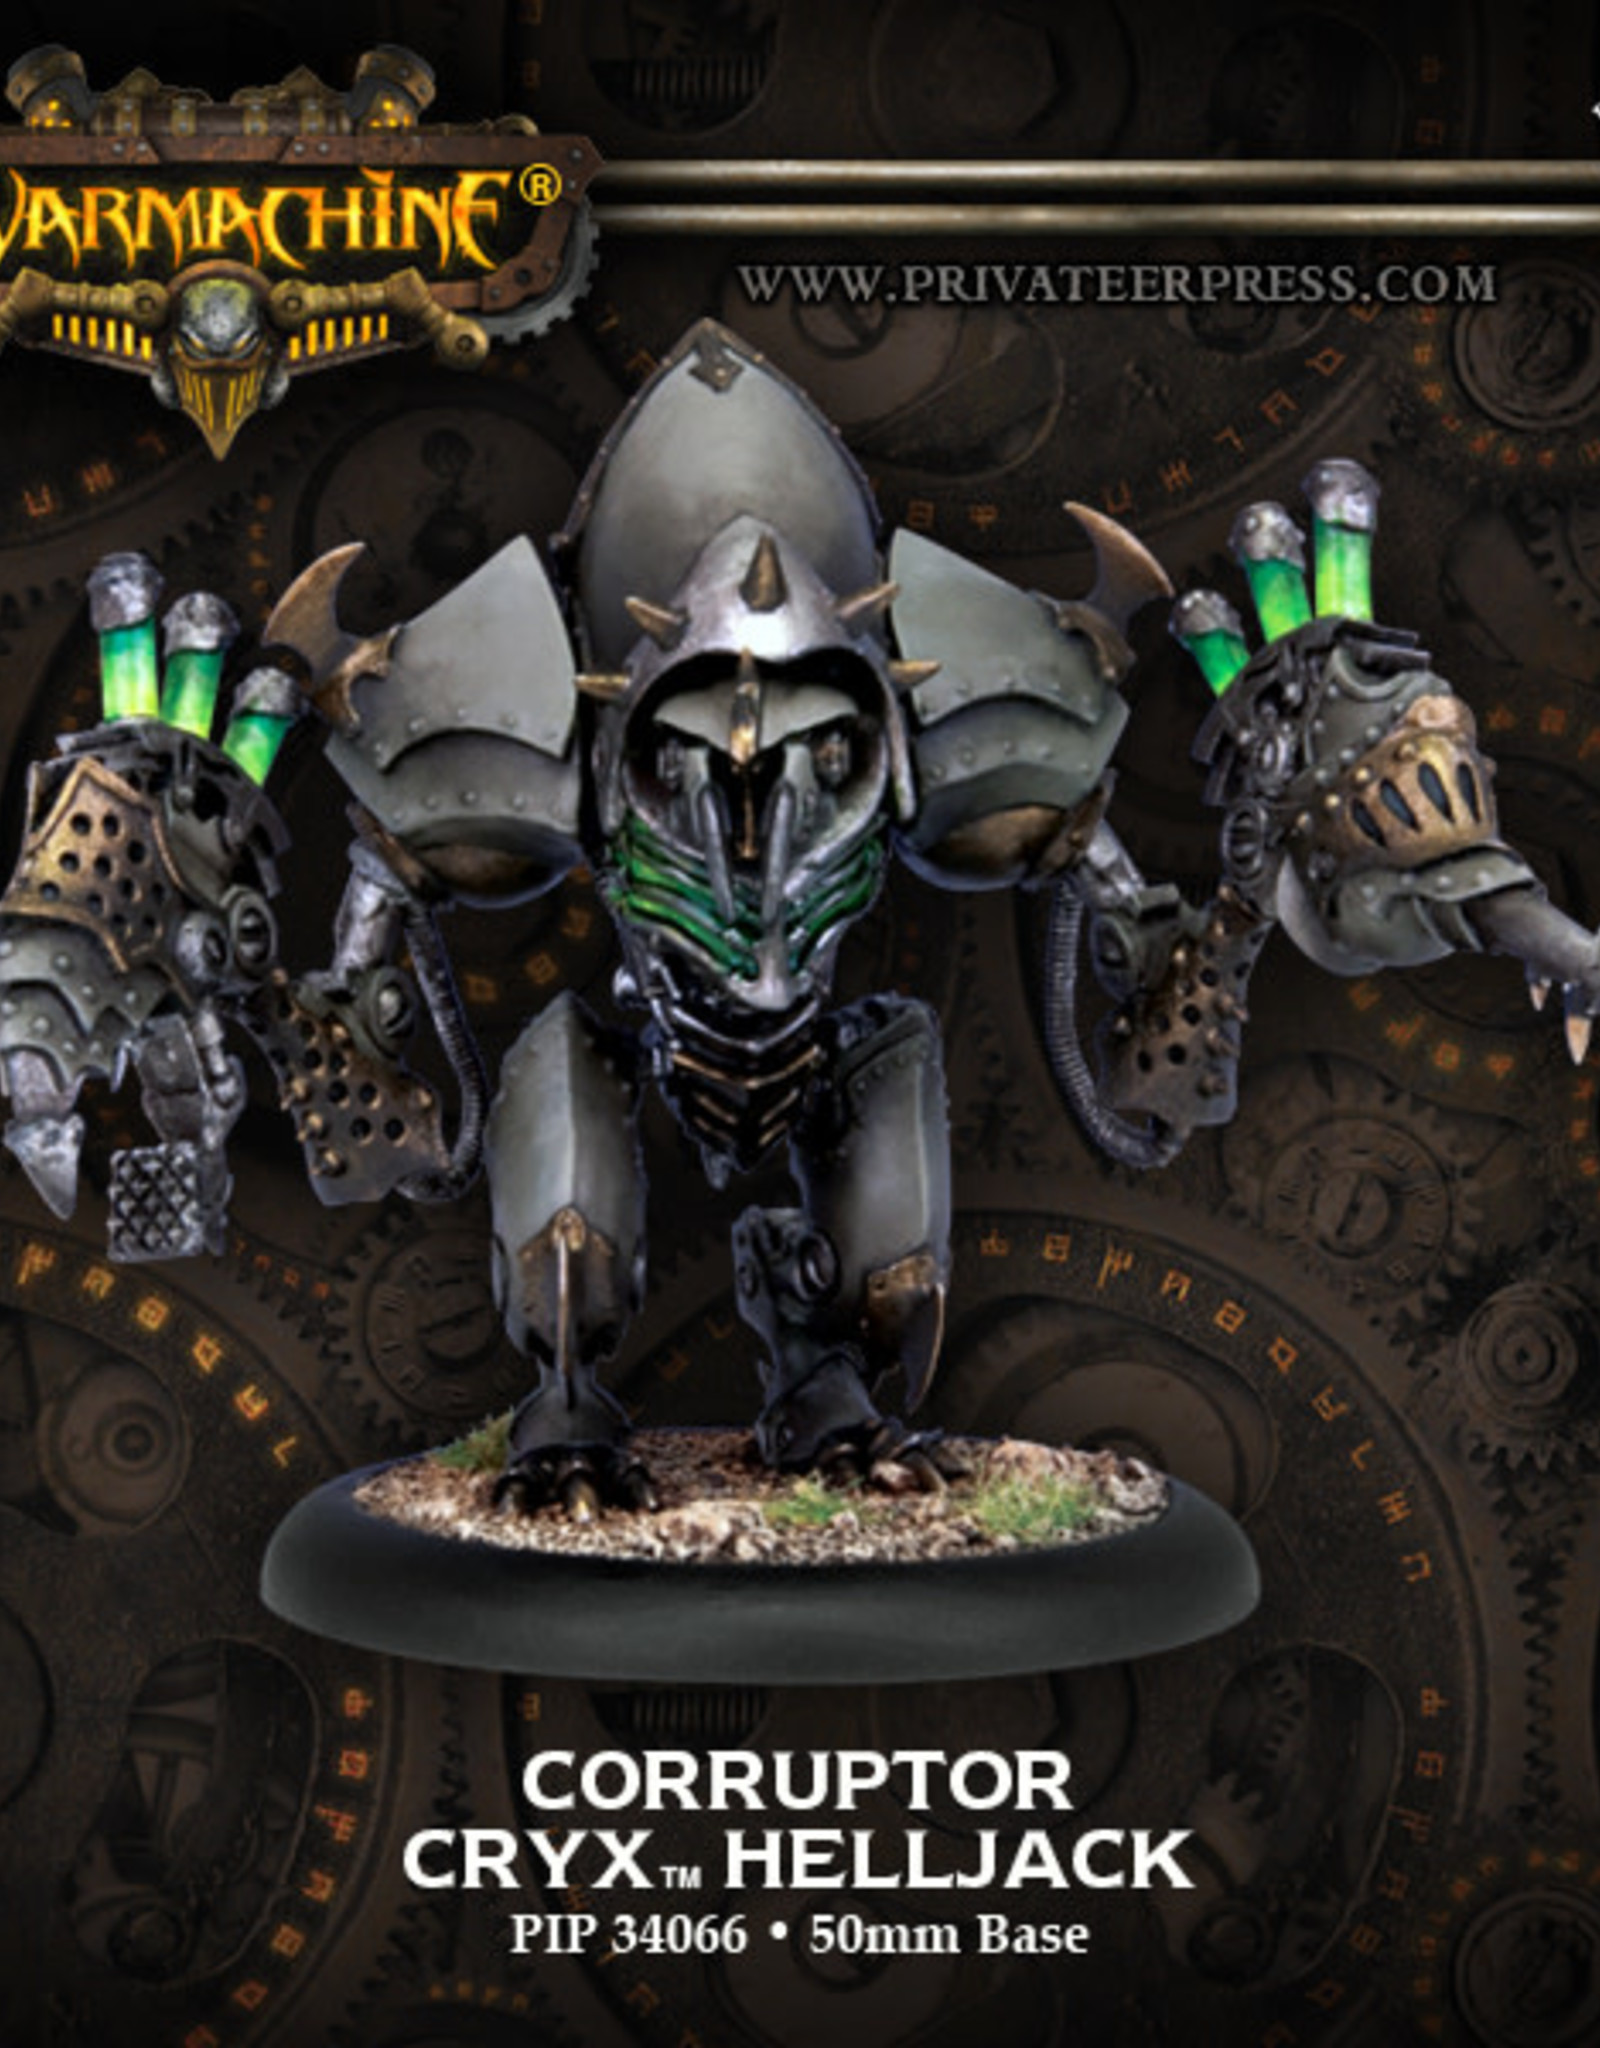 Warmachine Cryx - Corruptor/Reapers/Slayer Helljack Box